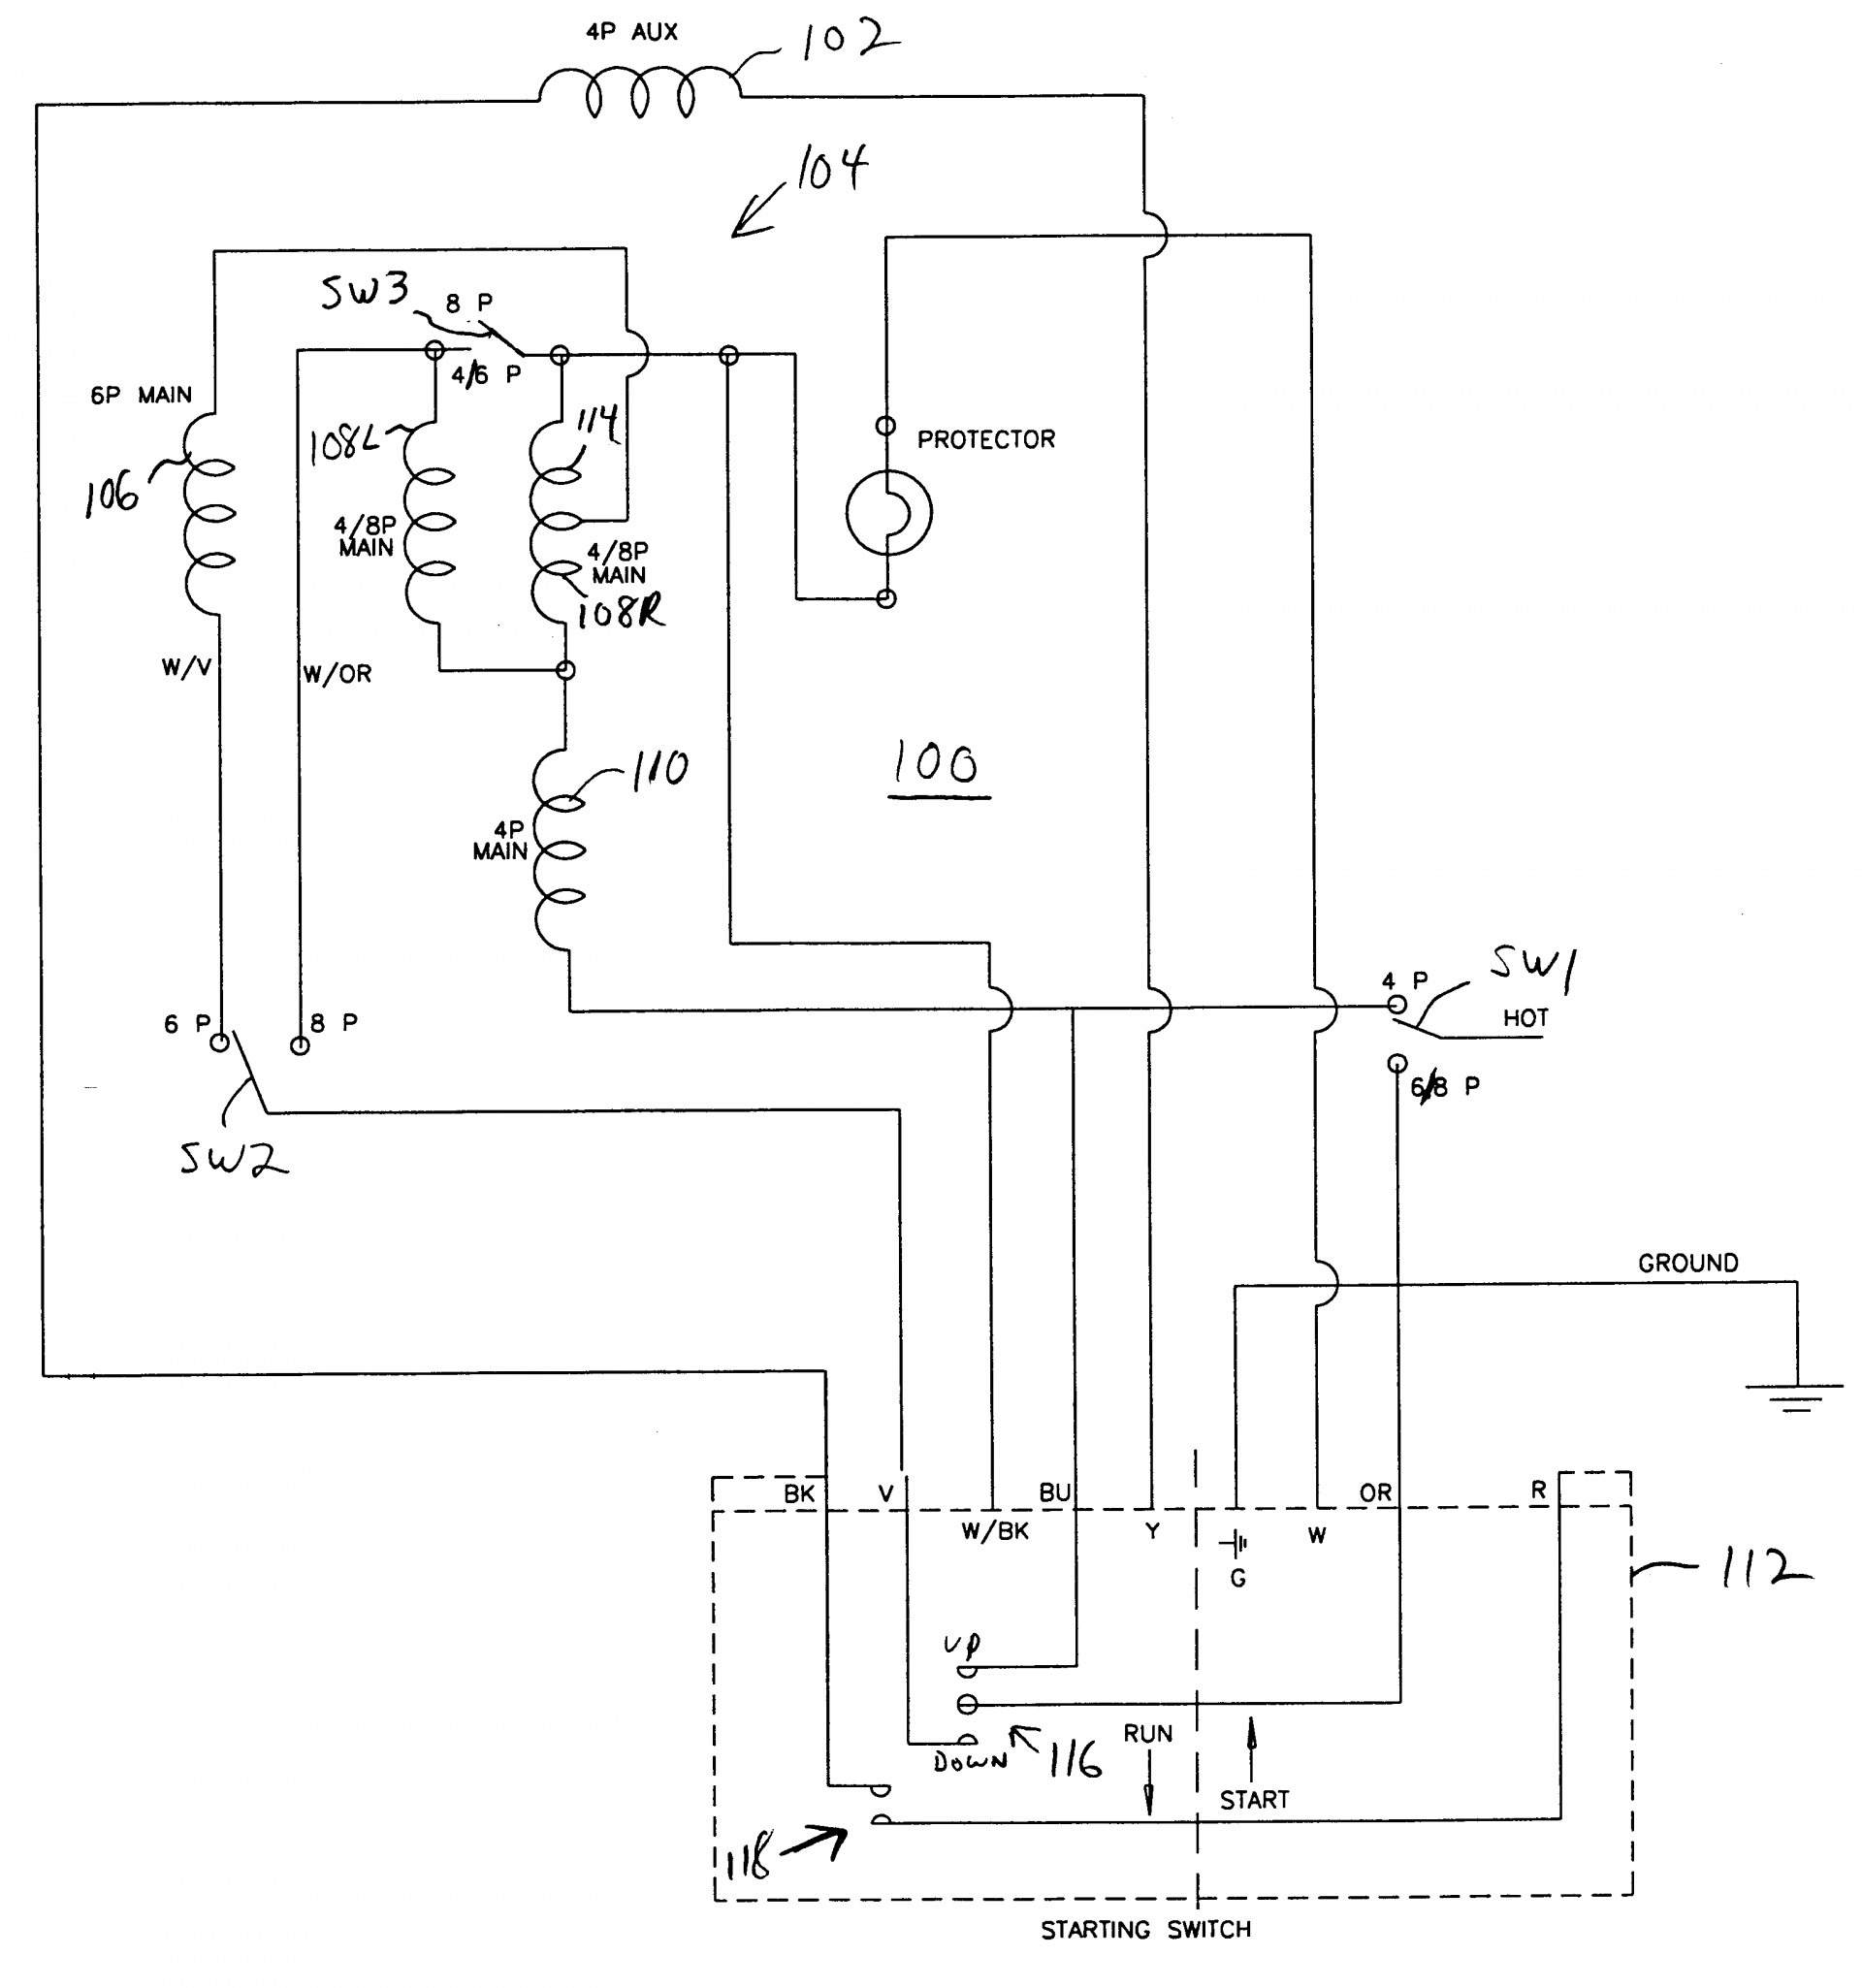 magnetek 6409 wiring diagram Download-Magnetek Motor Wiring Diagram Electrical Drawing Wiring Diagram • 18-p